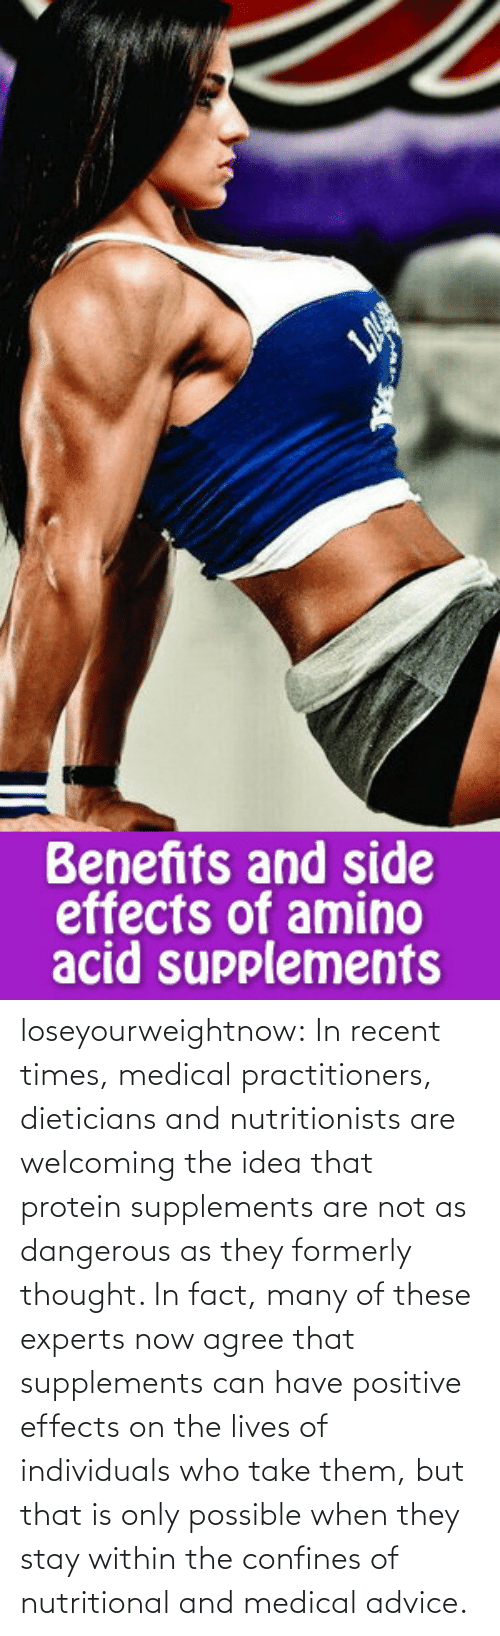 Nutritional: Benefits and side  effects of amino  acid supplements loseyourweightnow:  In recent times, medical practitioners, dieticians and nutritionists are welcoming the idea that protein supplements are not as dangerous as they formerly thought. In fact, many of these experts now agree that supplements can have positive effects on the lives of individuals who take them, but that is only possible when they stay within the confines of nutritional and medical advice.